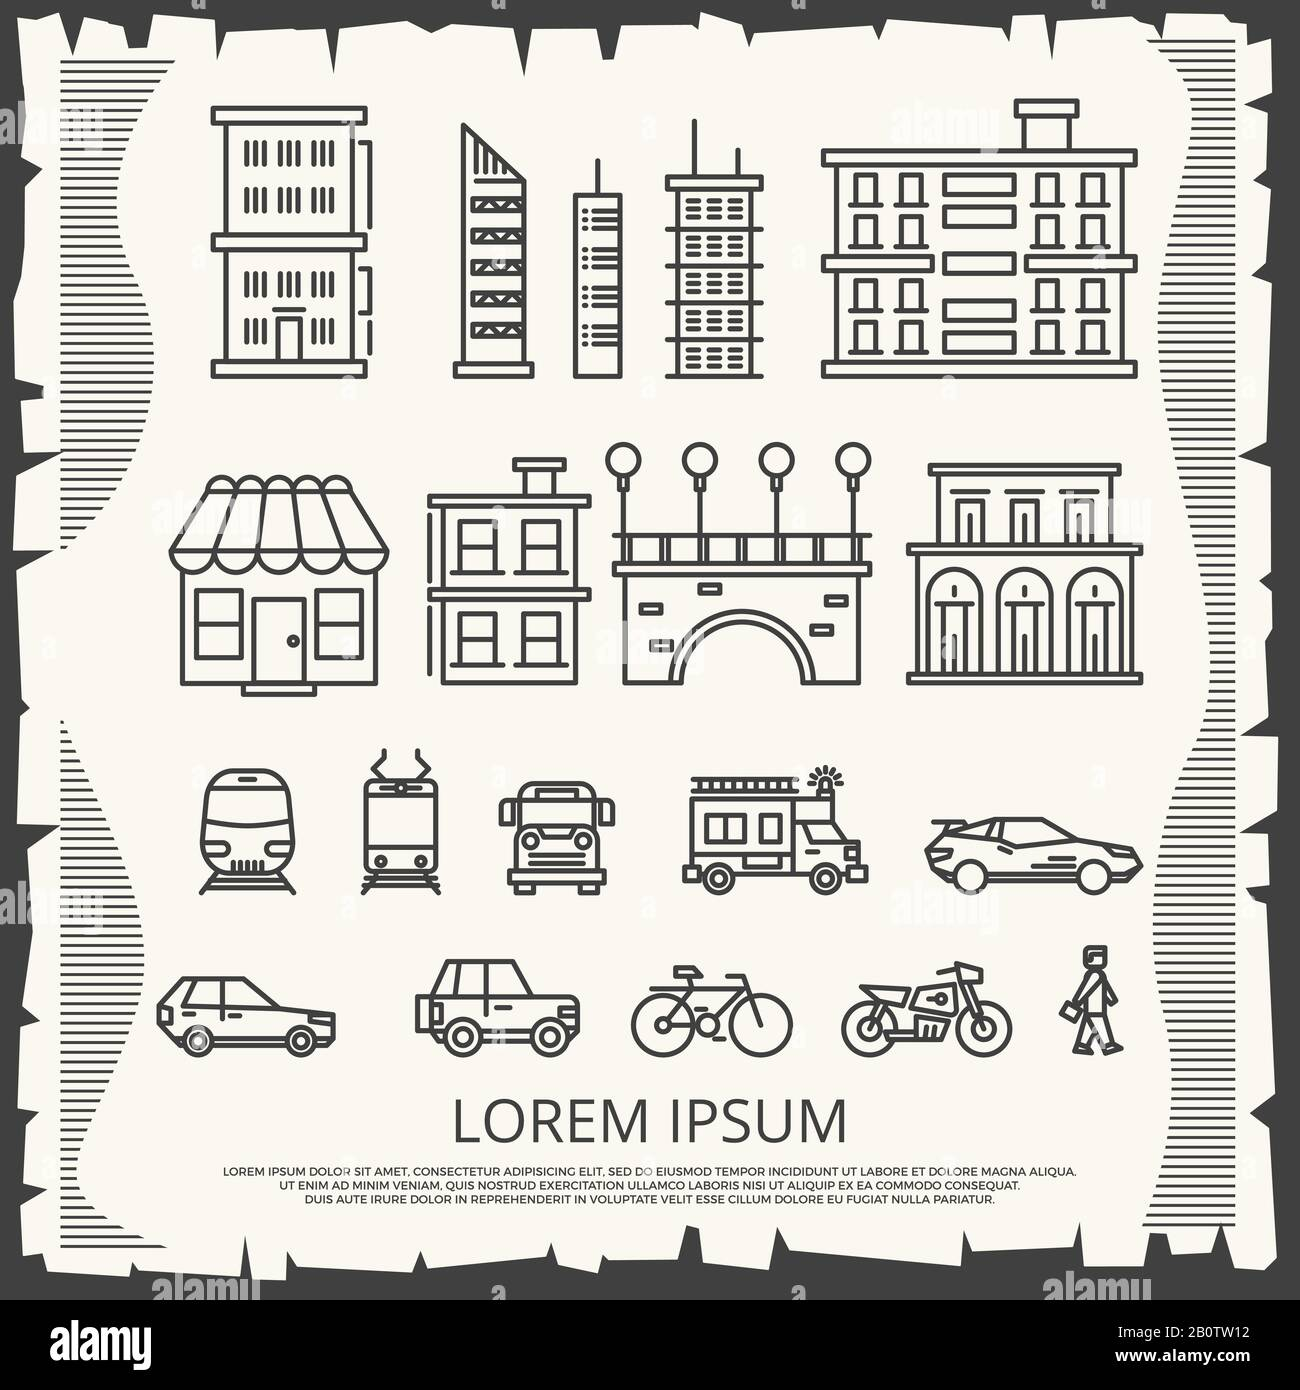 Modern City Elements On Vintage Poster Line Art City Poster Design Urban Fashion Building Vector Illustration Stock Vector Image Art Alamy